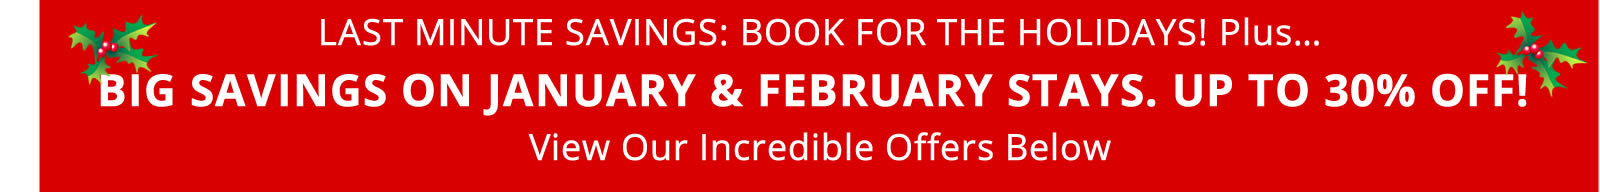 Book Now for Big Savings on January & February Stays. Up to 30% off!